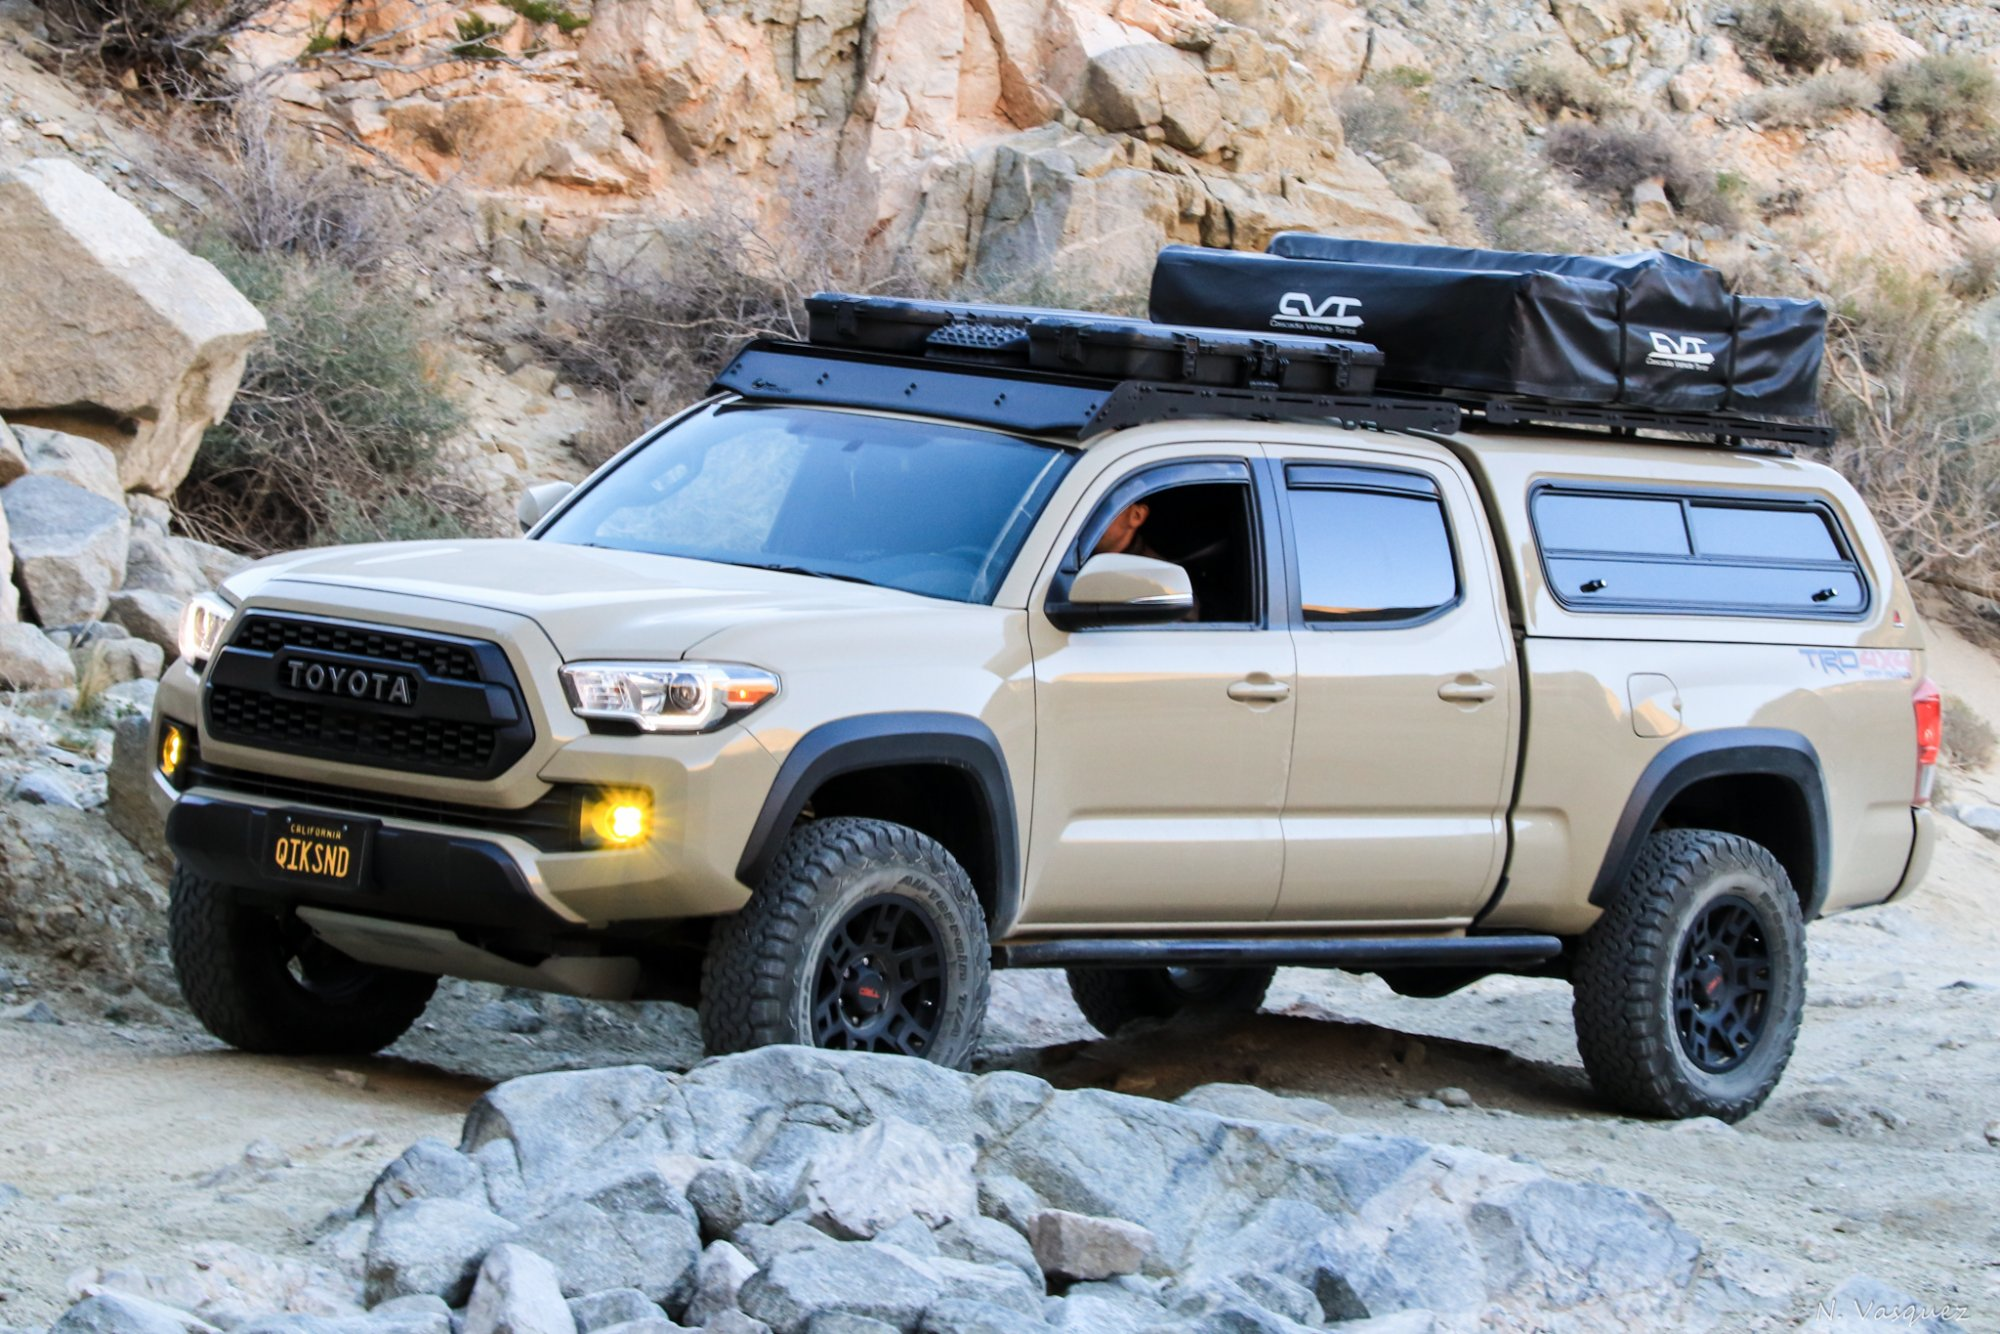 Roof Racks Bed Rack Vs Roof Rack 3rd Generation Toyota Tacomas Tacoma3g Com